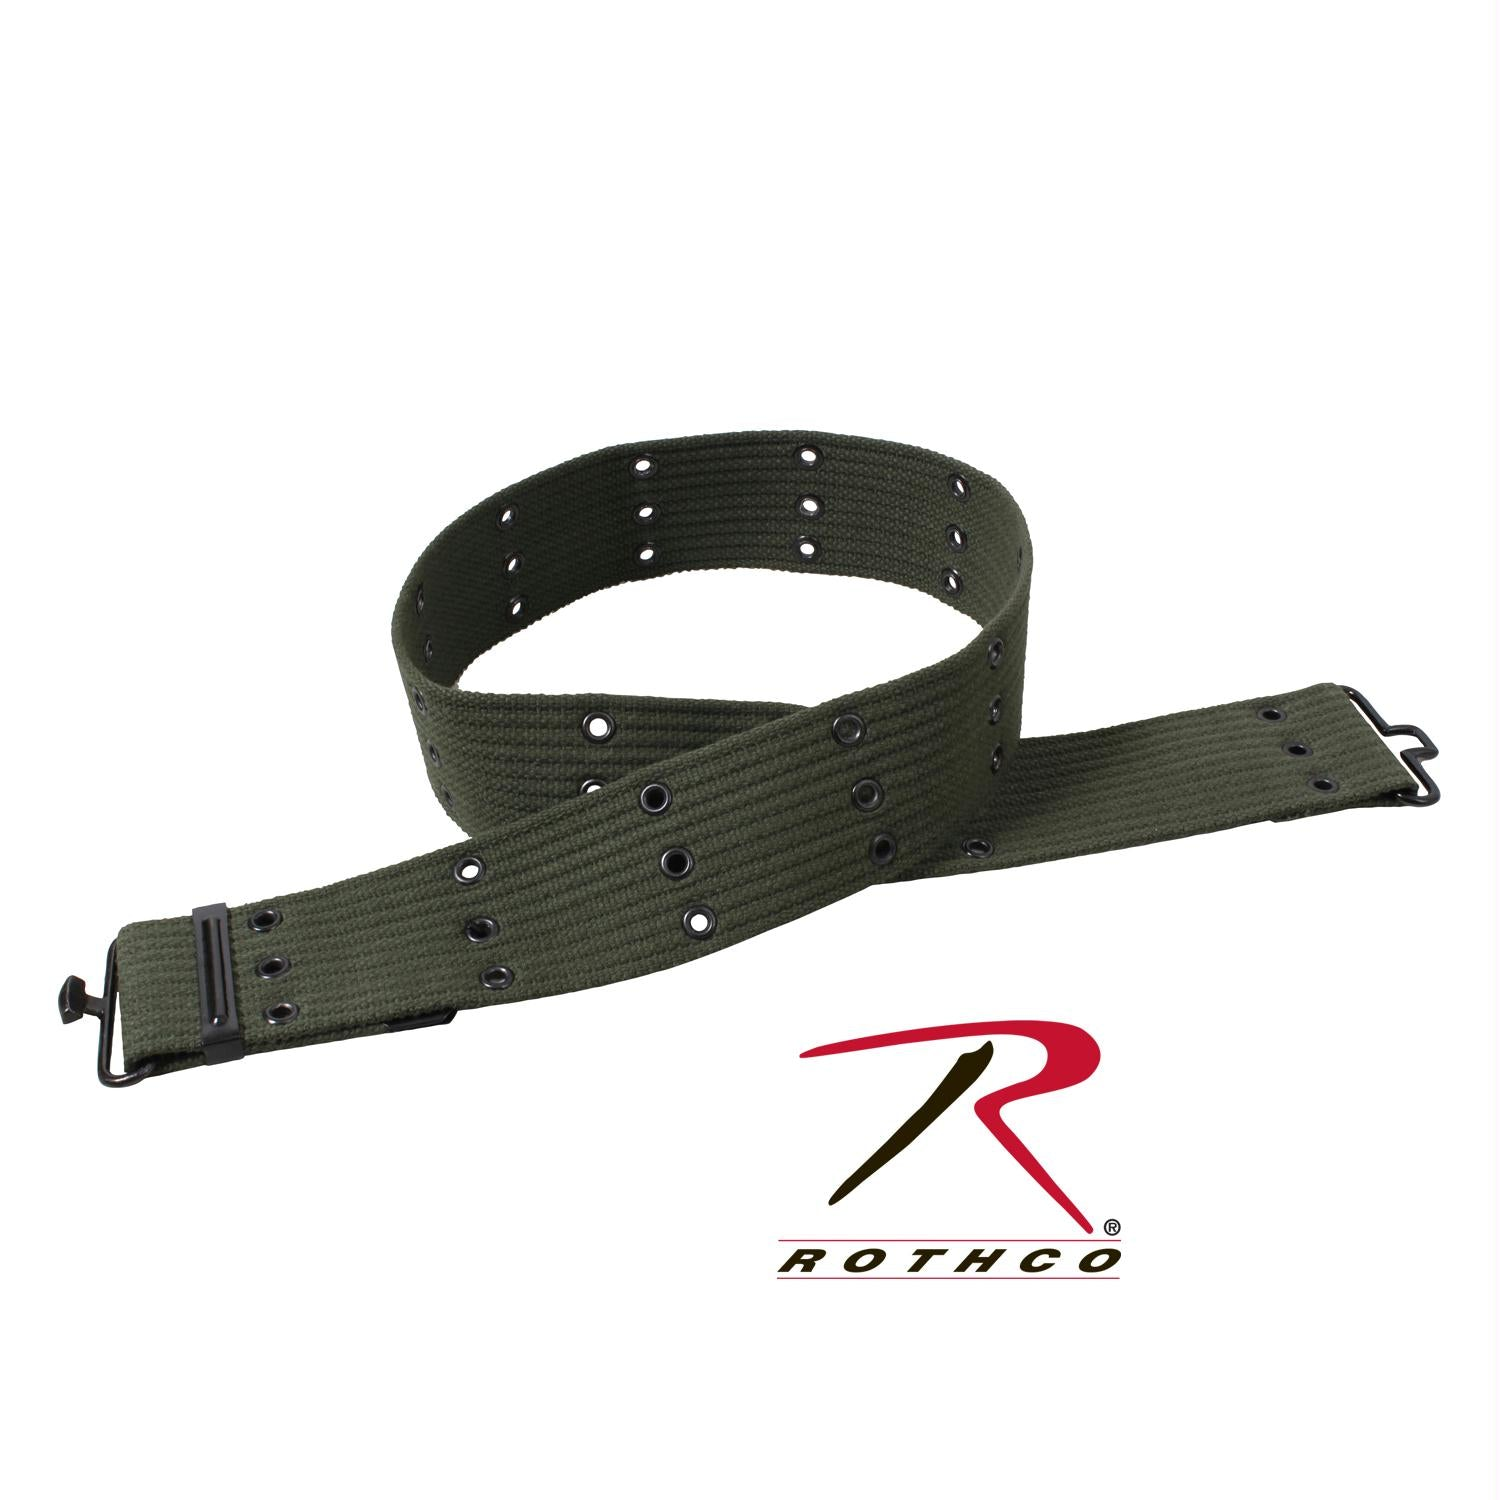 Rothco Military Style Pistol Belts - Olive Drab